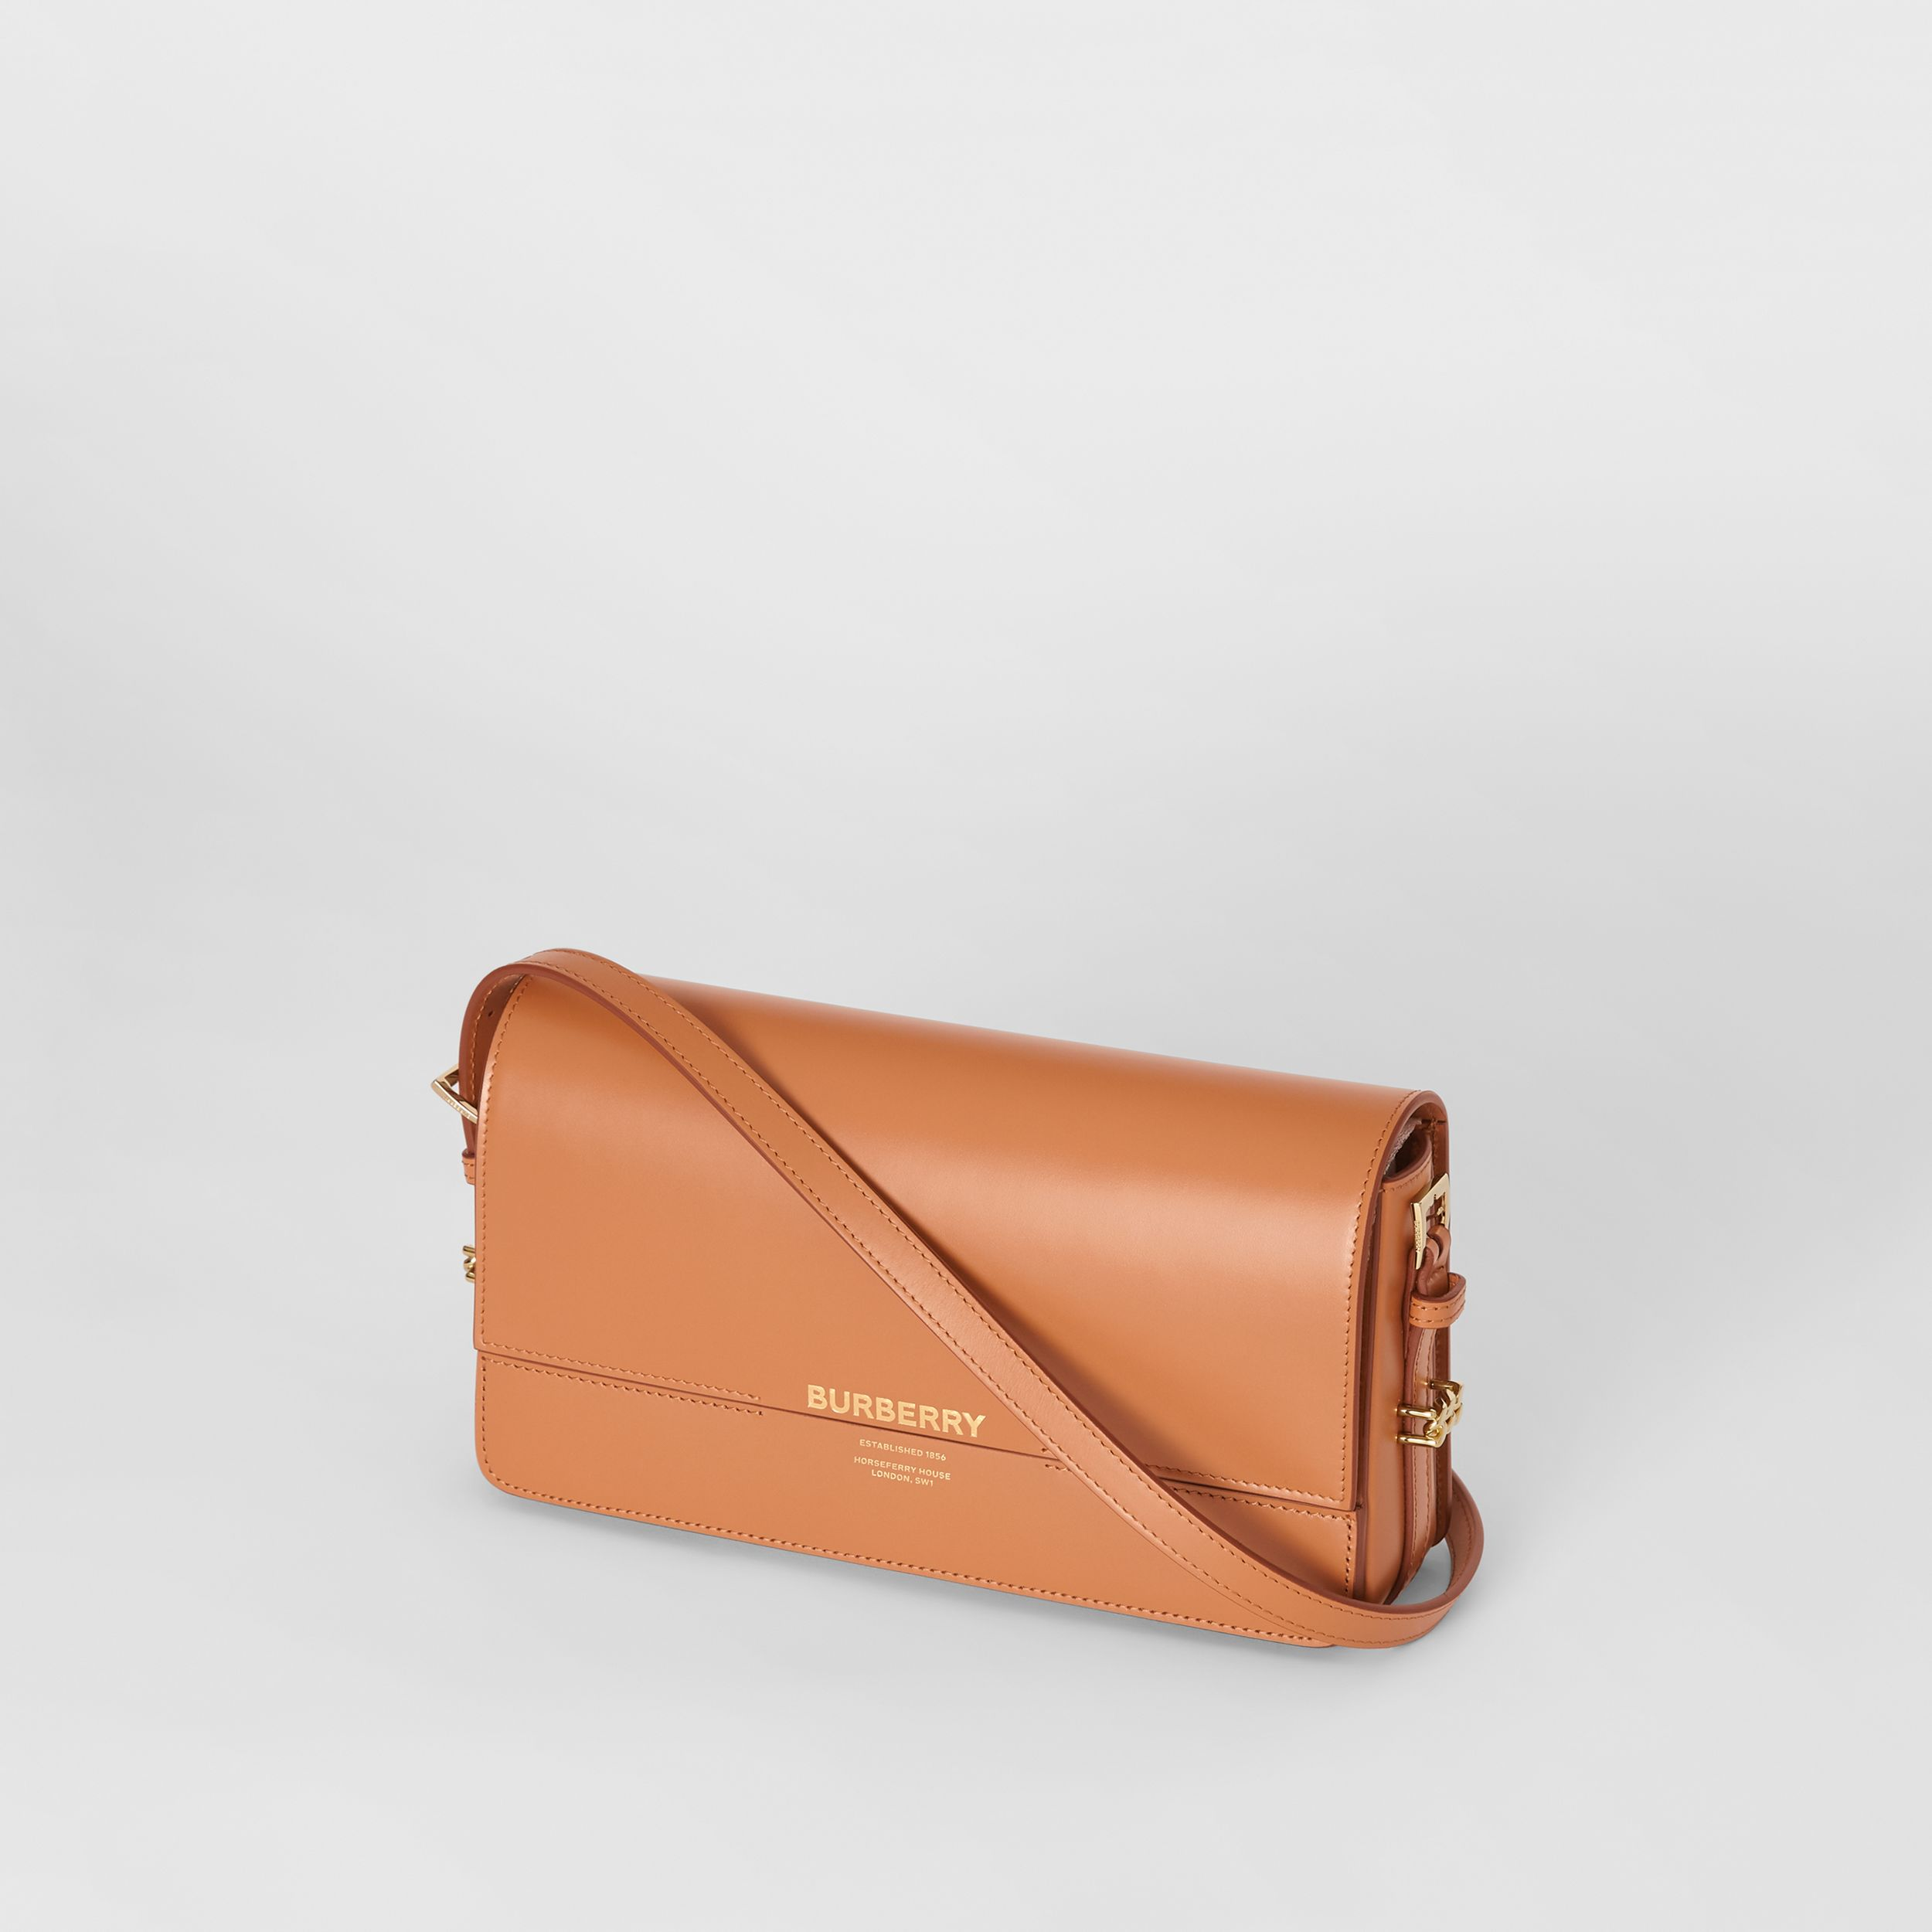 Mini Leather Grace Bag in Nutmeg - Women | Burberry - 4